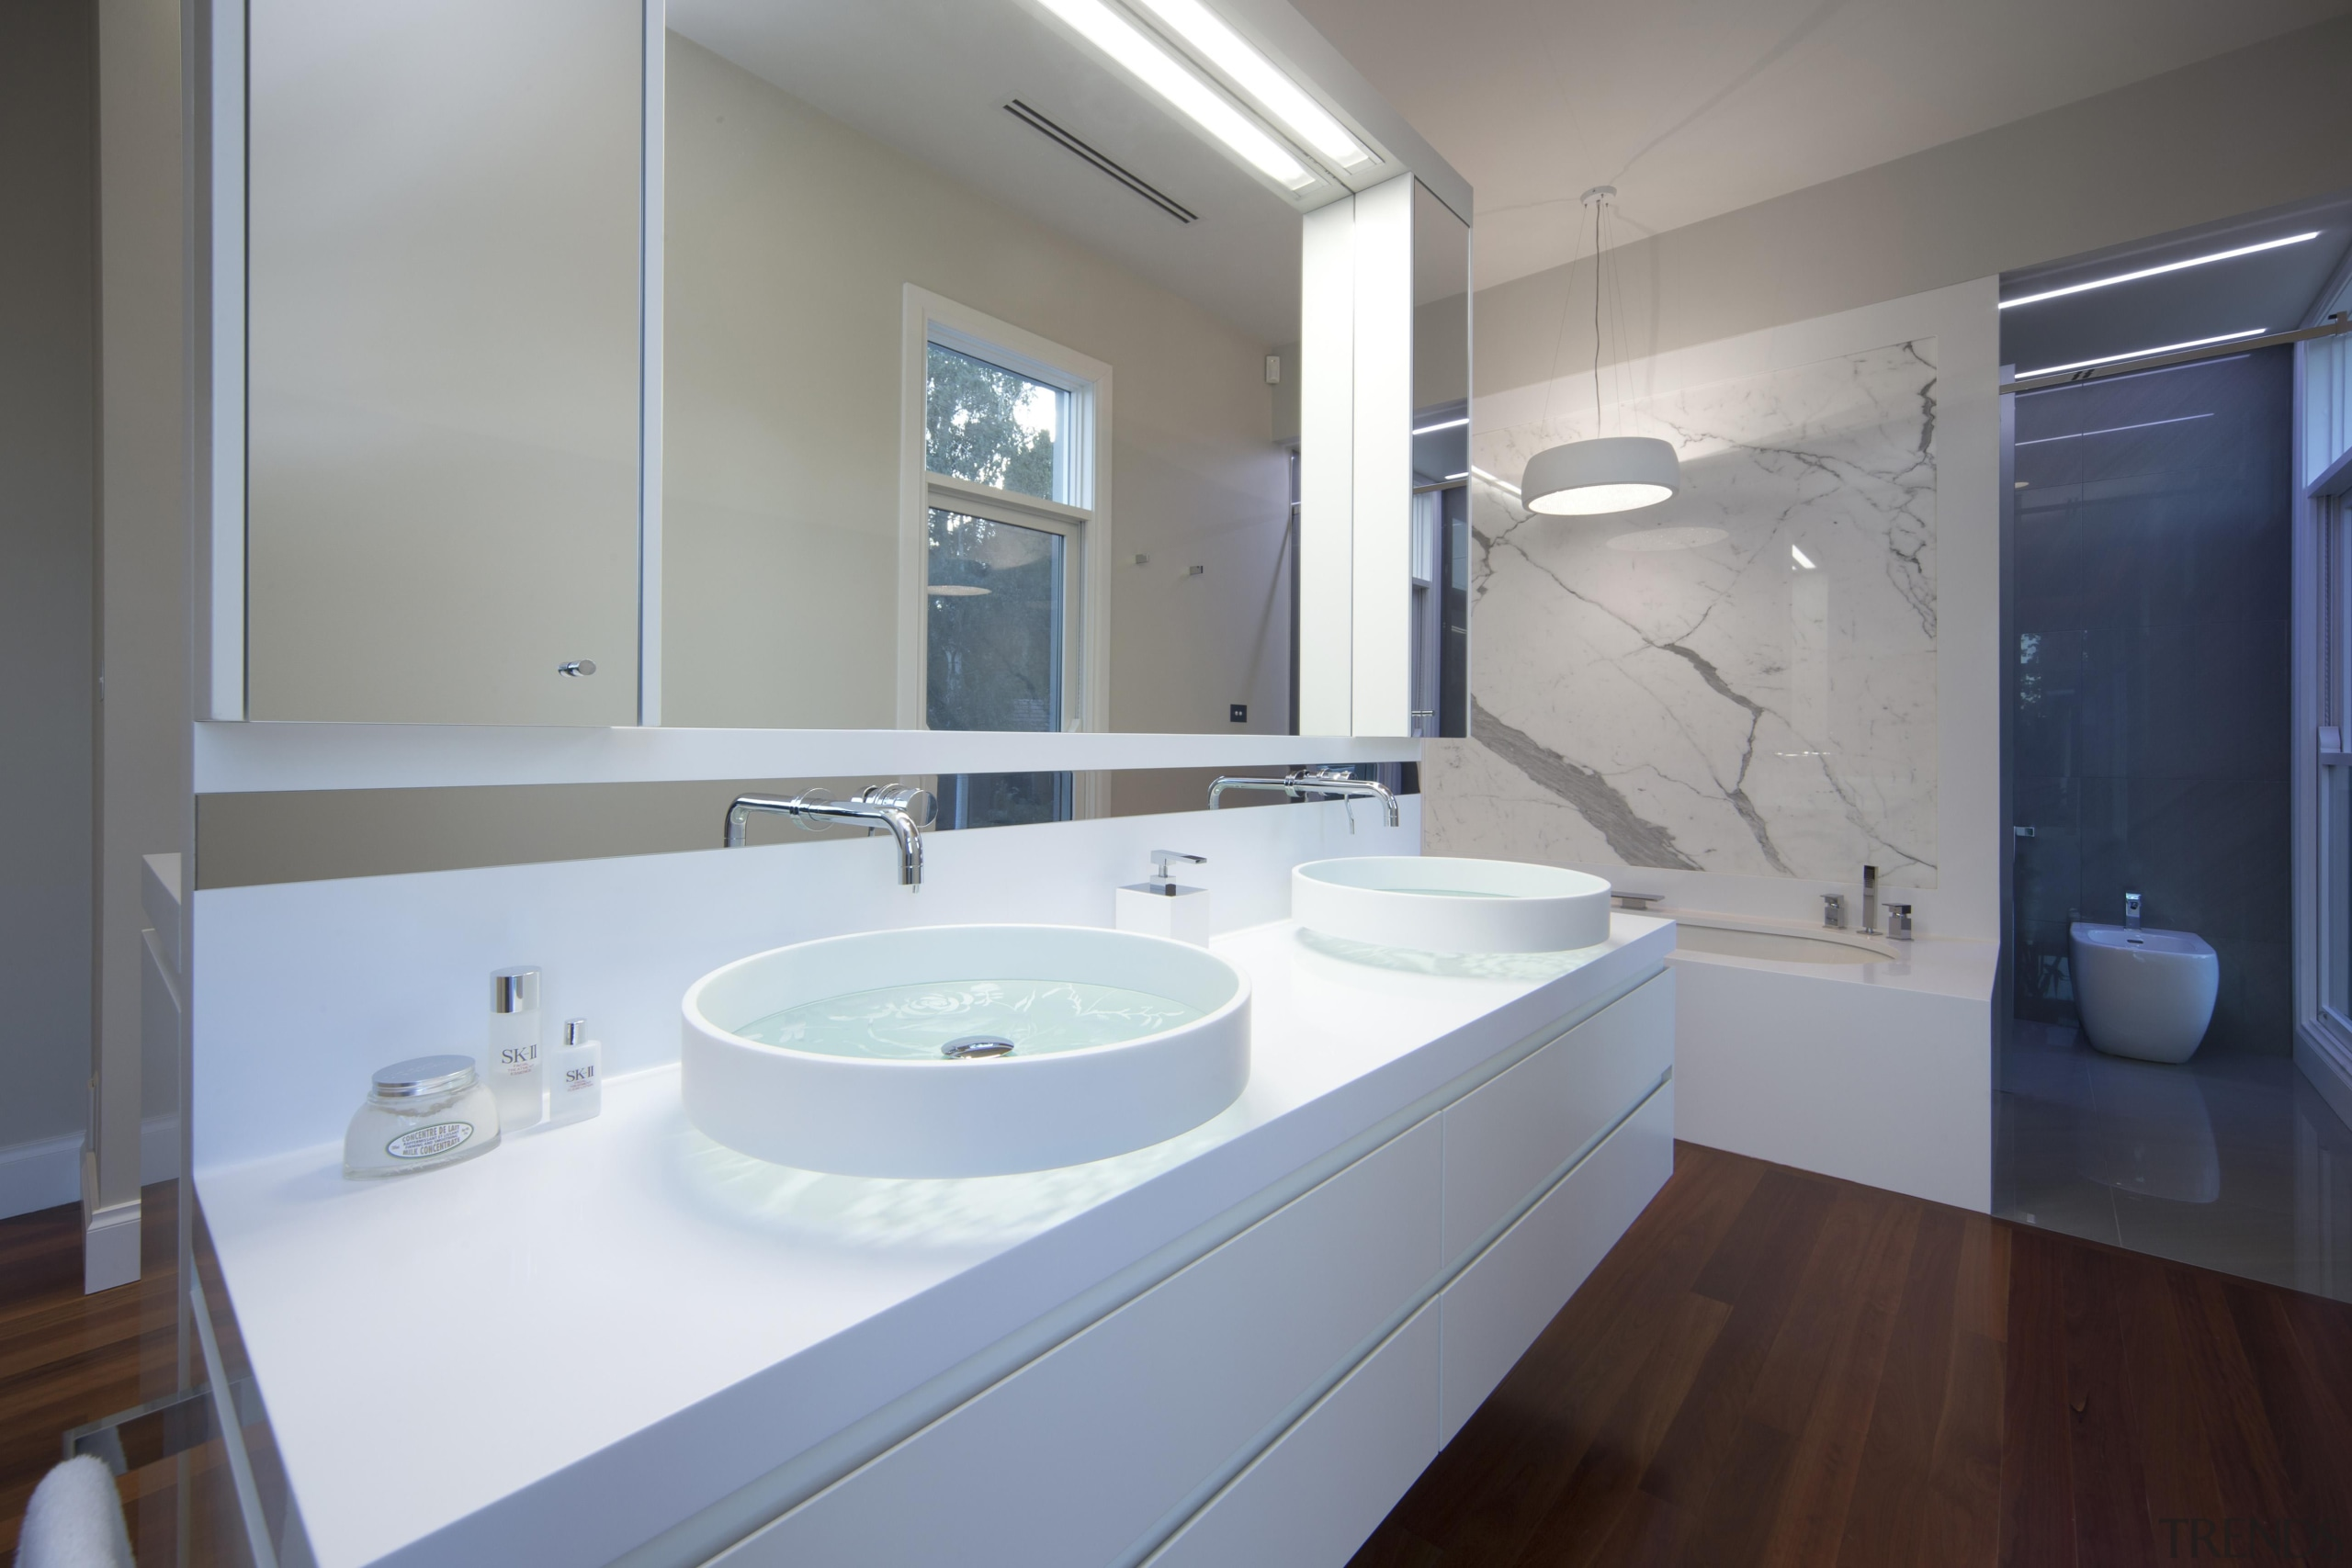 Winner Bathroom of the Year ACT Sthn NSW architecture, bathroom, bathroom accessory, bathroom cabinet, countertop, home, interior design, property, room, sink, gray